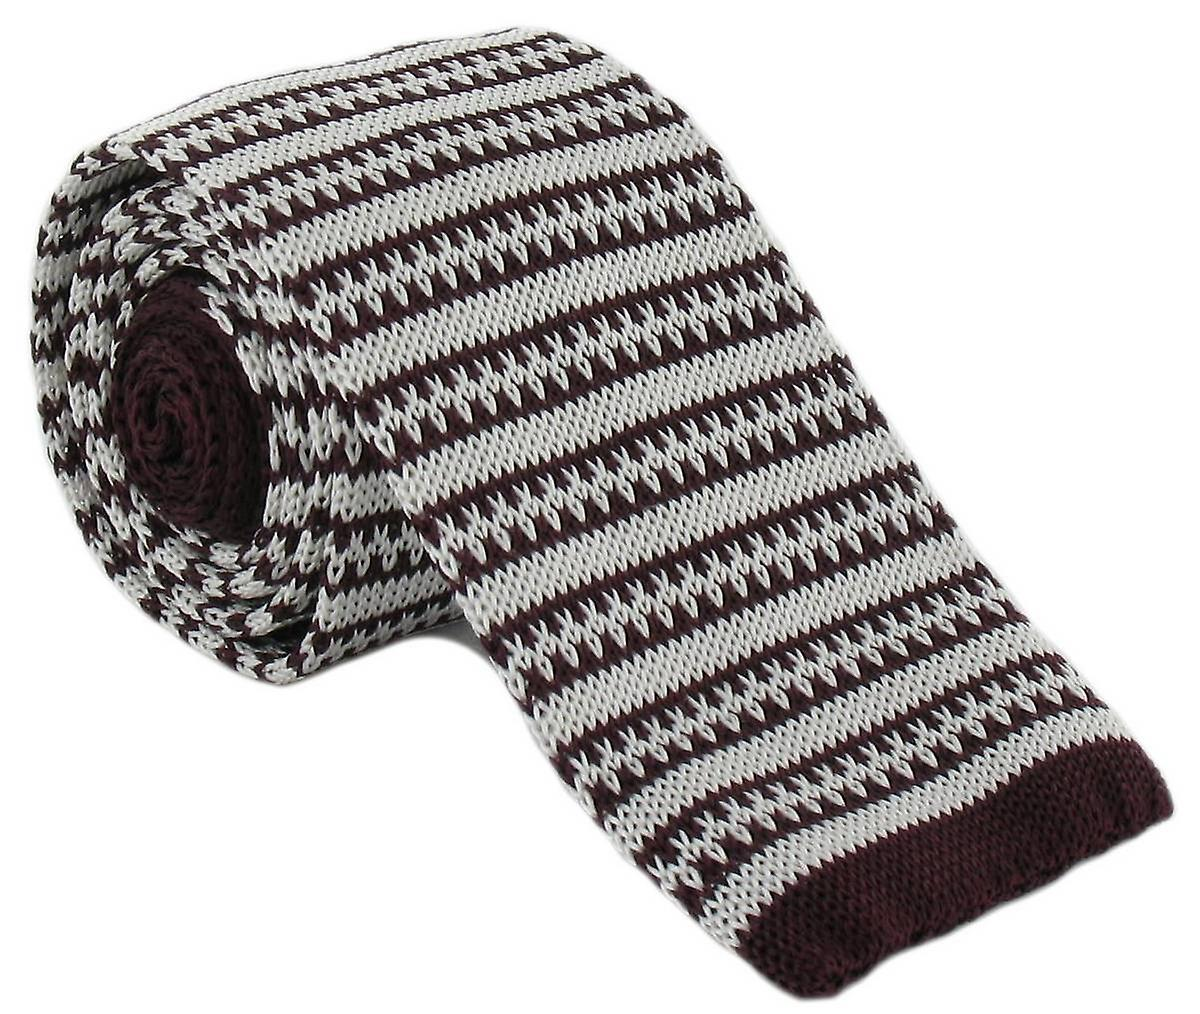 Michelsons of London Silk Knitted Patterned Stripe Skinny Tie - Burgundy/White